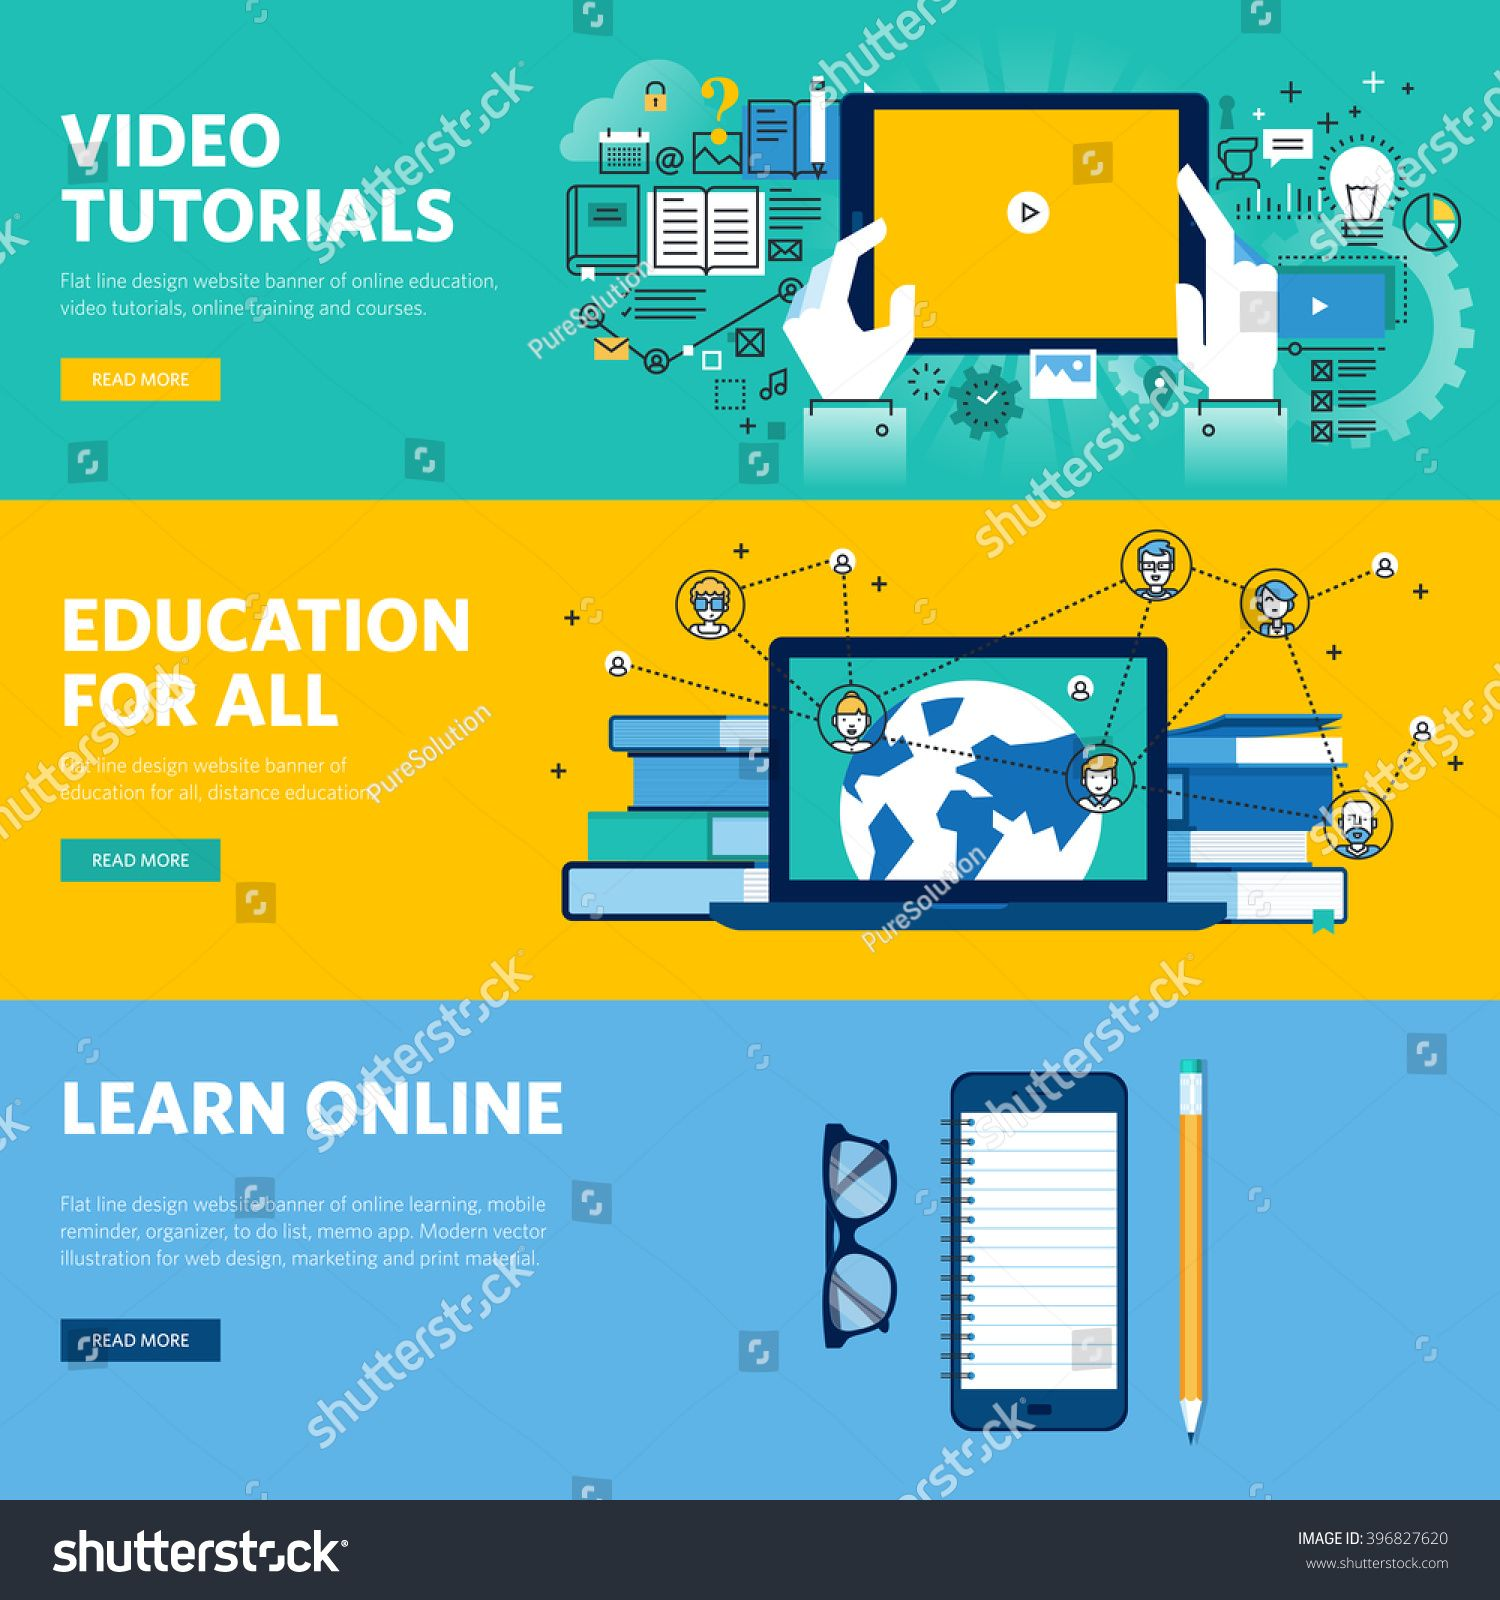 Set Of Flat Line Design Web Banners For Distance Education Online Learning Video Tutorials Vector Illustr Learning Website Design Online Learning Web Banner